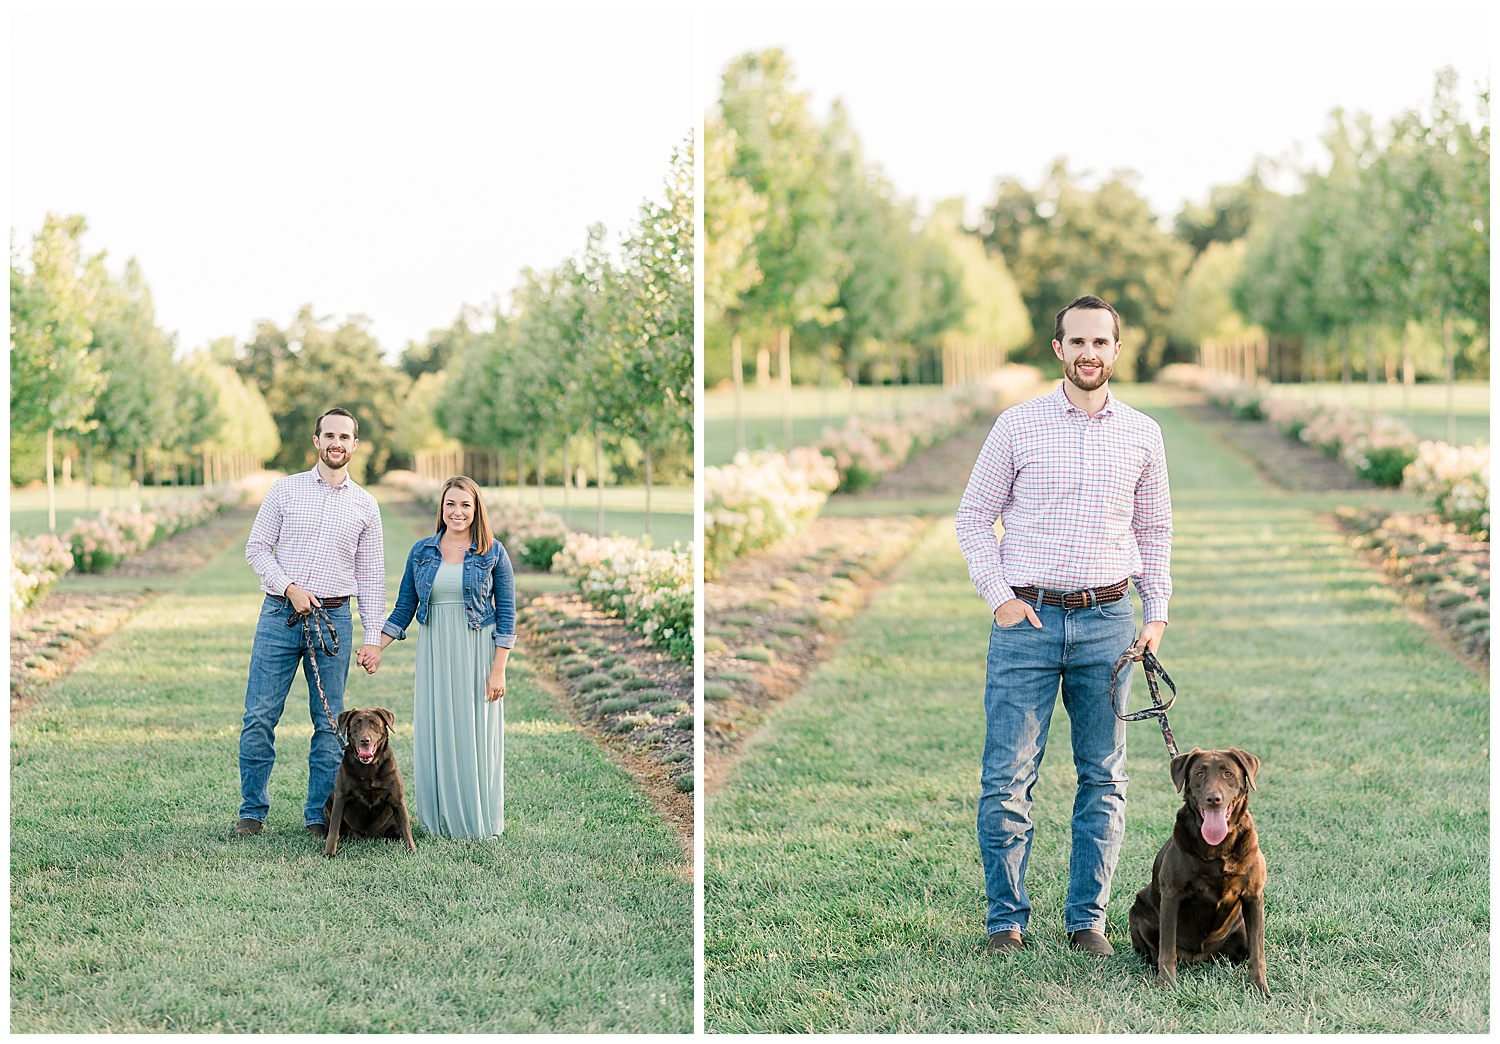 Cox_Arboretum_Anniversary_Session_Miamisburg_Ohio_Cassandra_Janina_Photography_Ohio_Wedding_Photographer_0256.jpg